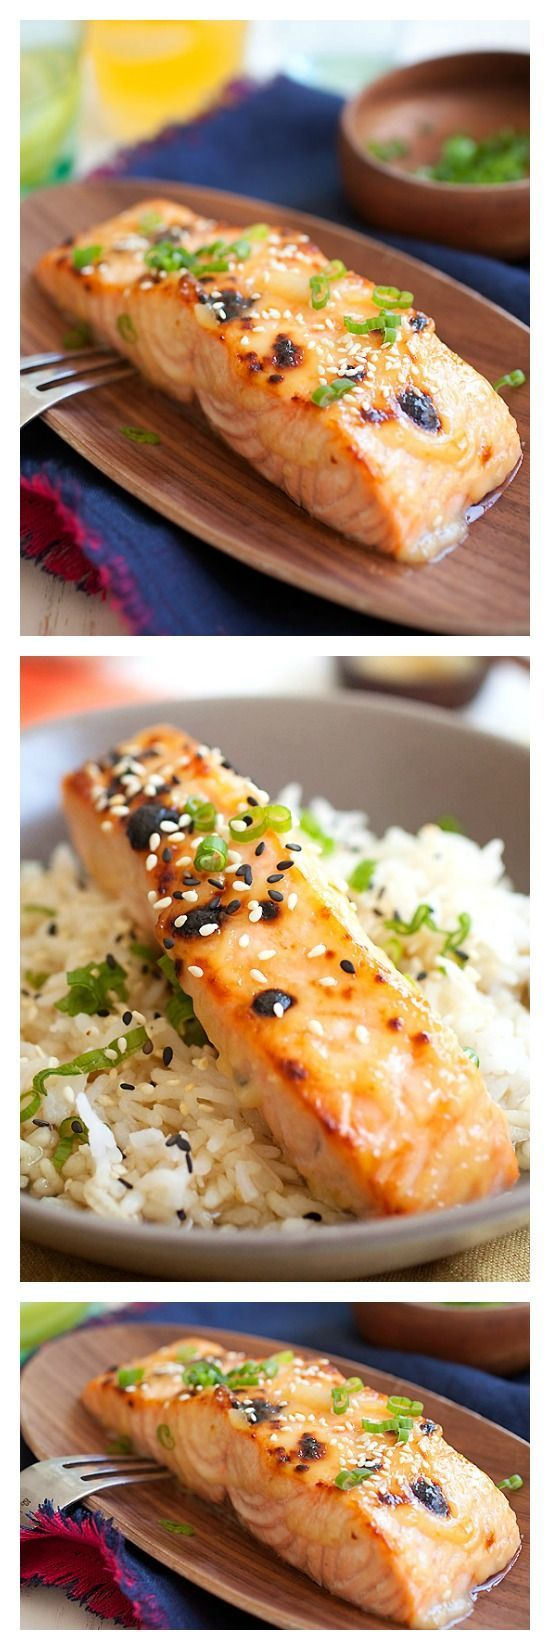 15 Minute Miso-Glazed Salmon. Give Your Regular Salmon a Makeover by Adding Japanese White Miso -  You Will Love This Quick and Easy Recipe that Takes Only 15 Minutes! #healthy #quick #easyrecipes